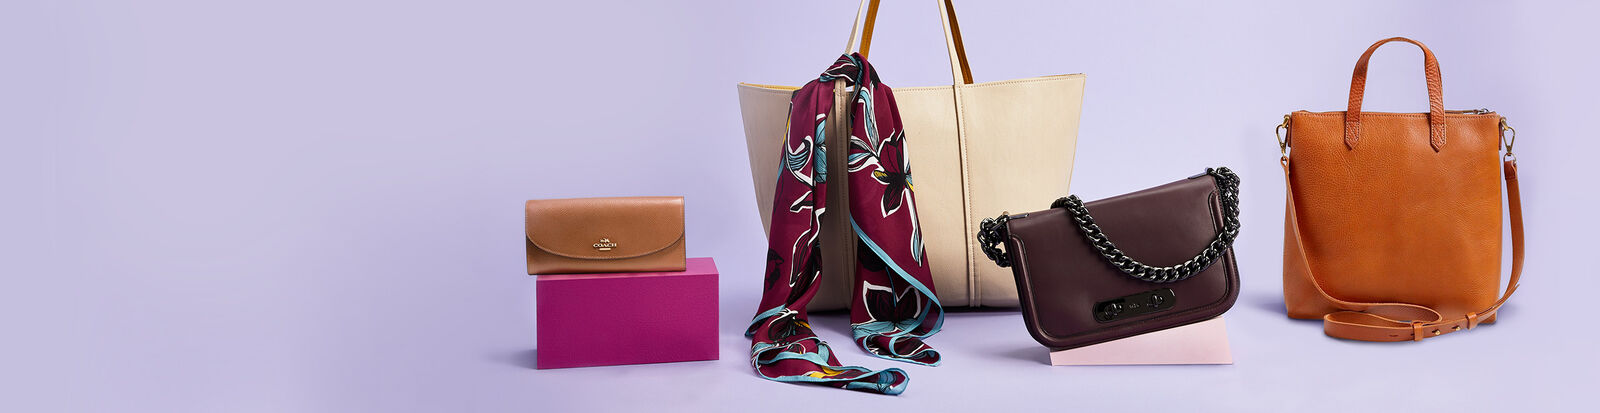 Fall accessories by Michael Kors, Tory Burch, and more.